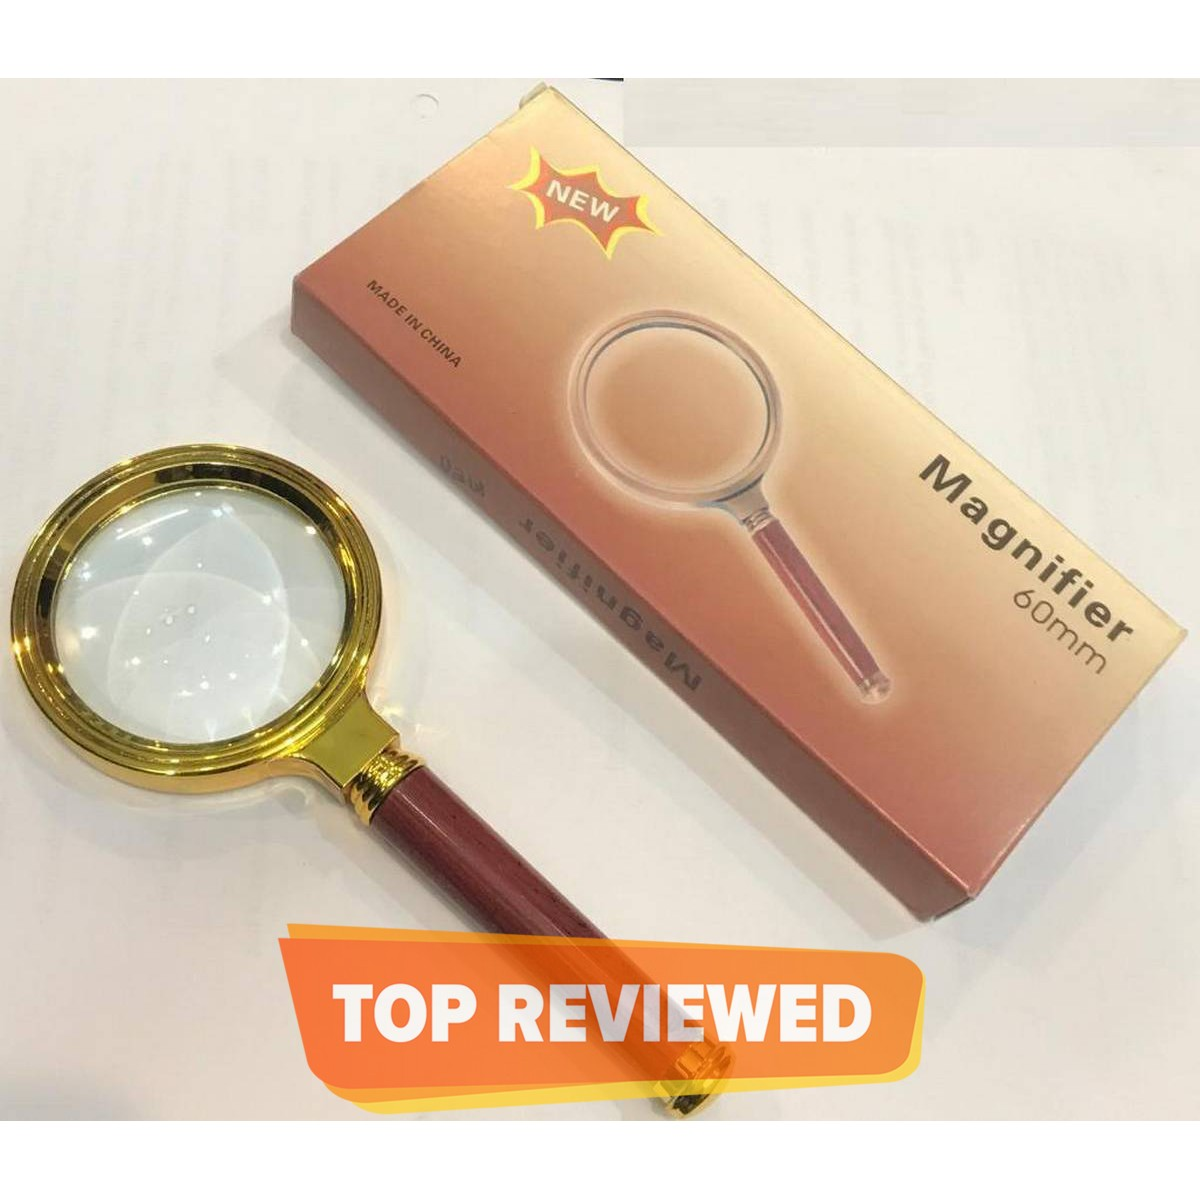 60mm 10x Handheld Jewelry Magnifier Magnifying Glass Red Brown Handle 60mm / 10X Jewelry Loupe for School, Offices, Doctors